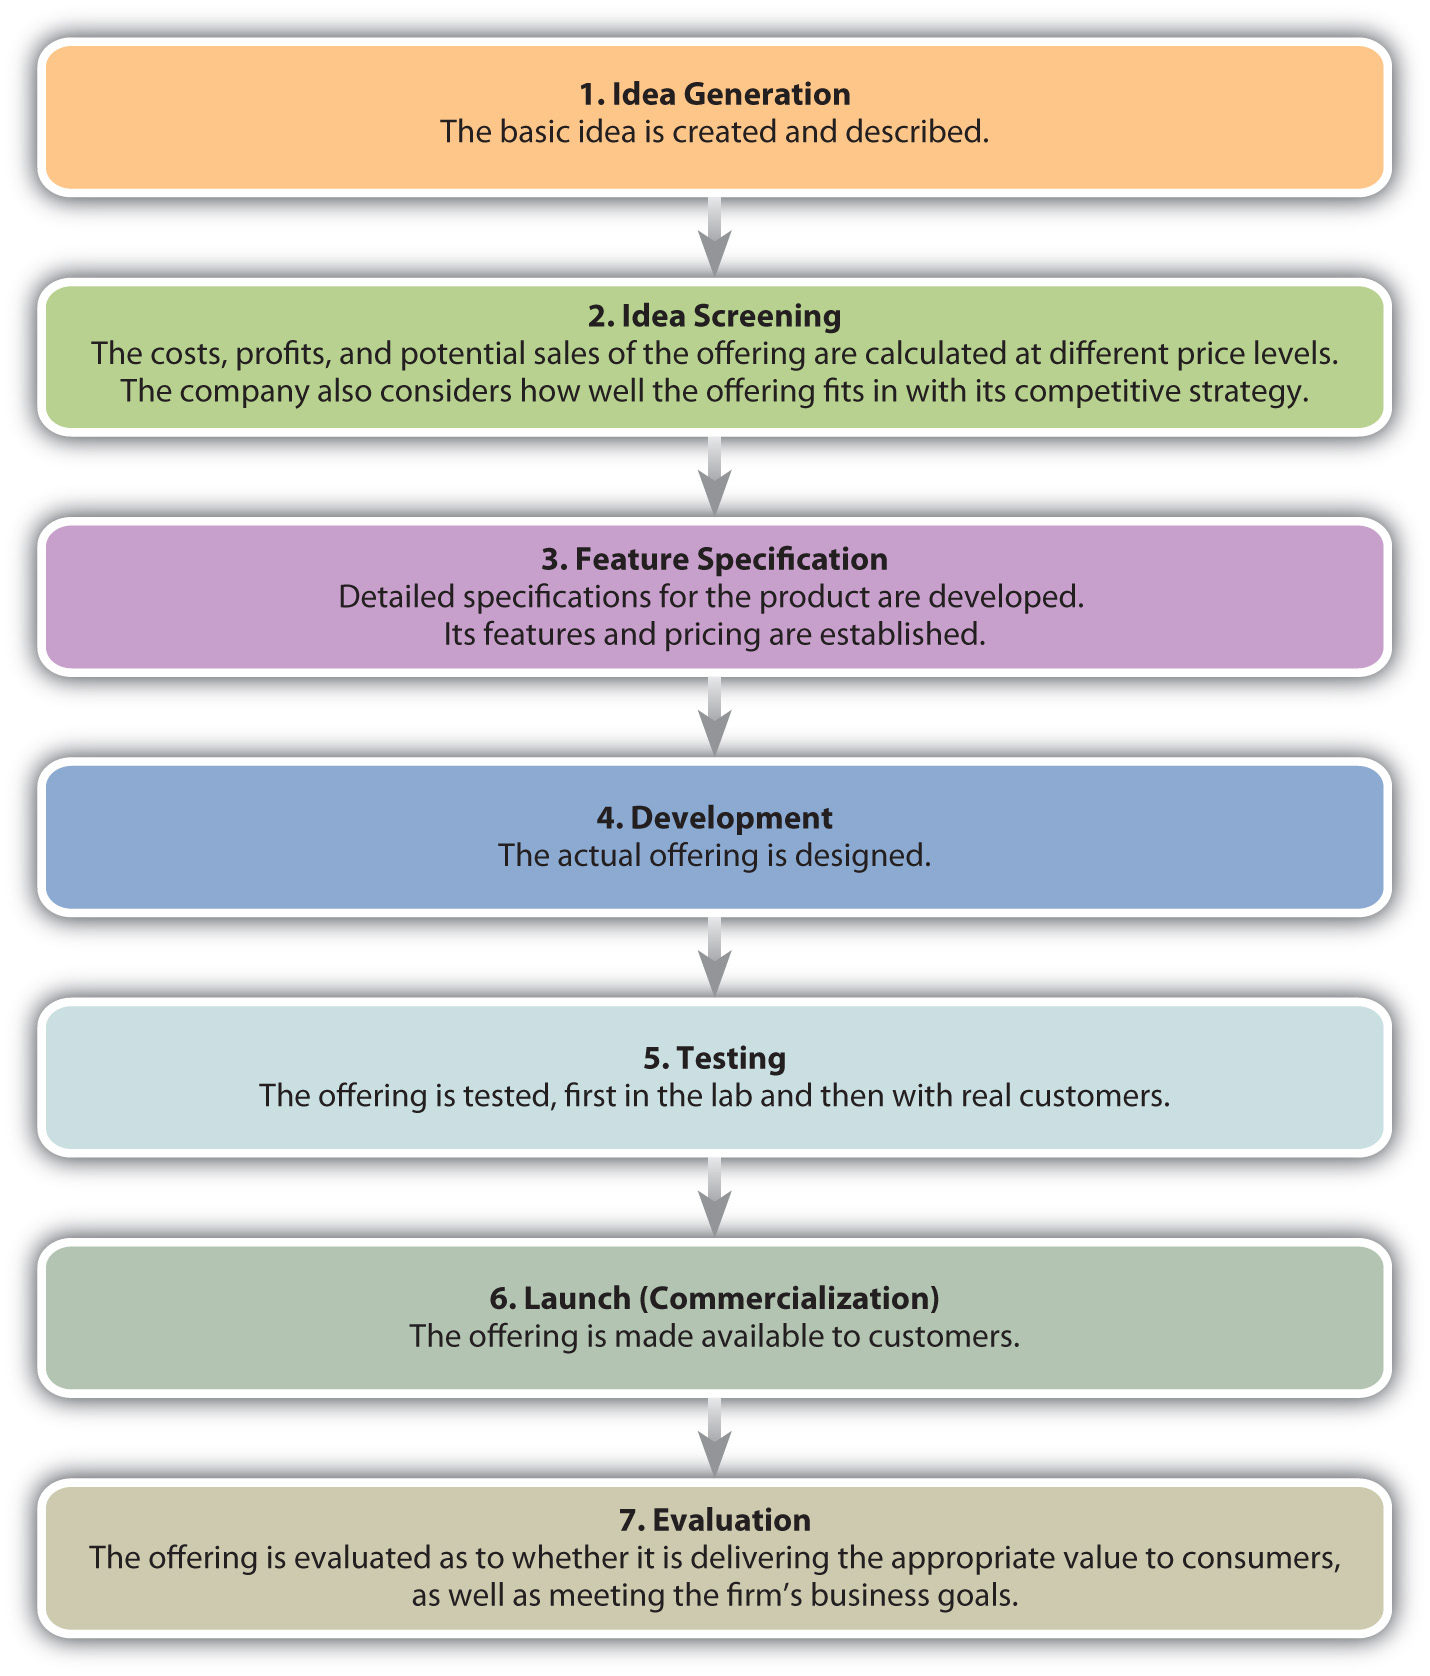 The new offering development process for The product development company